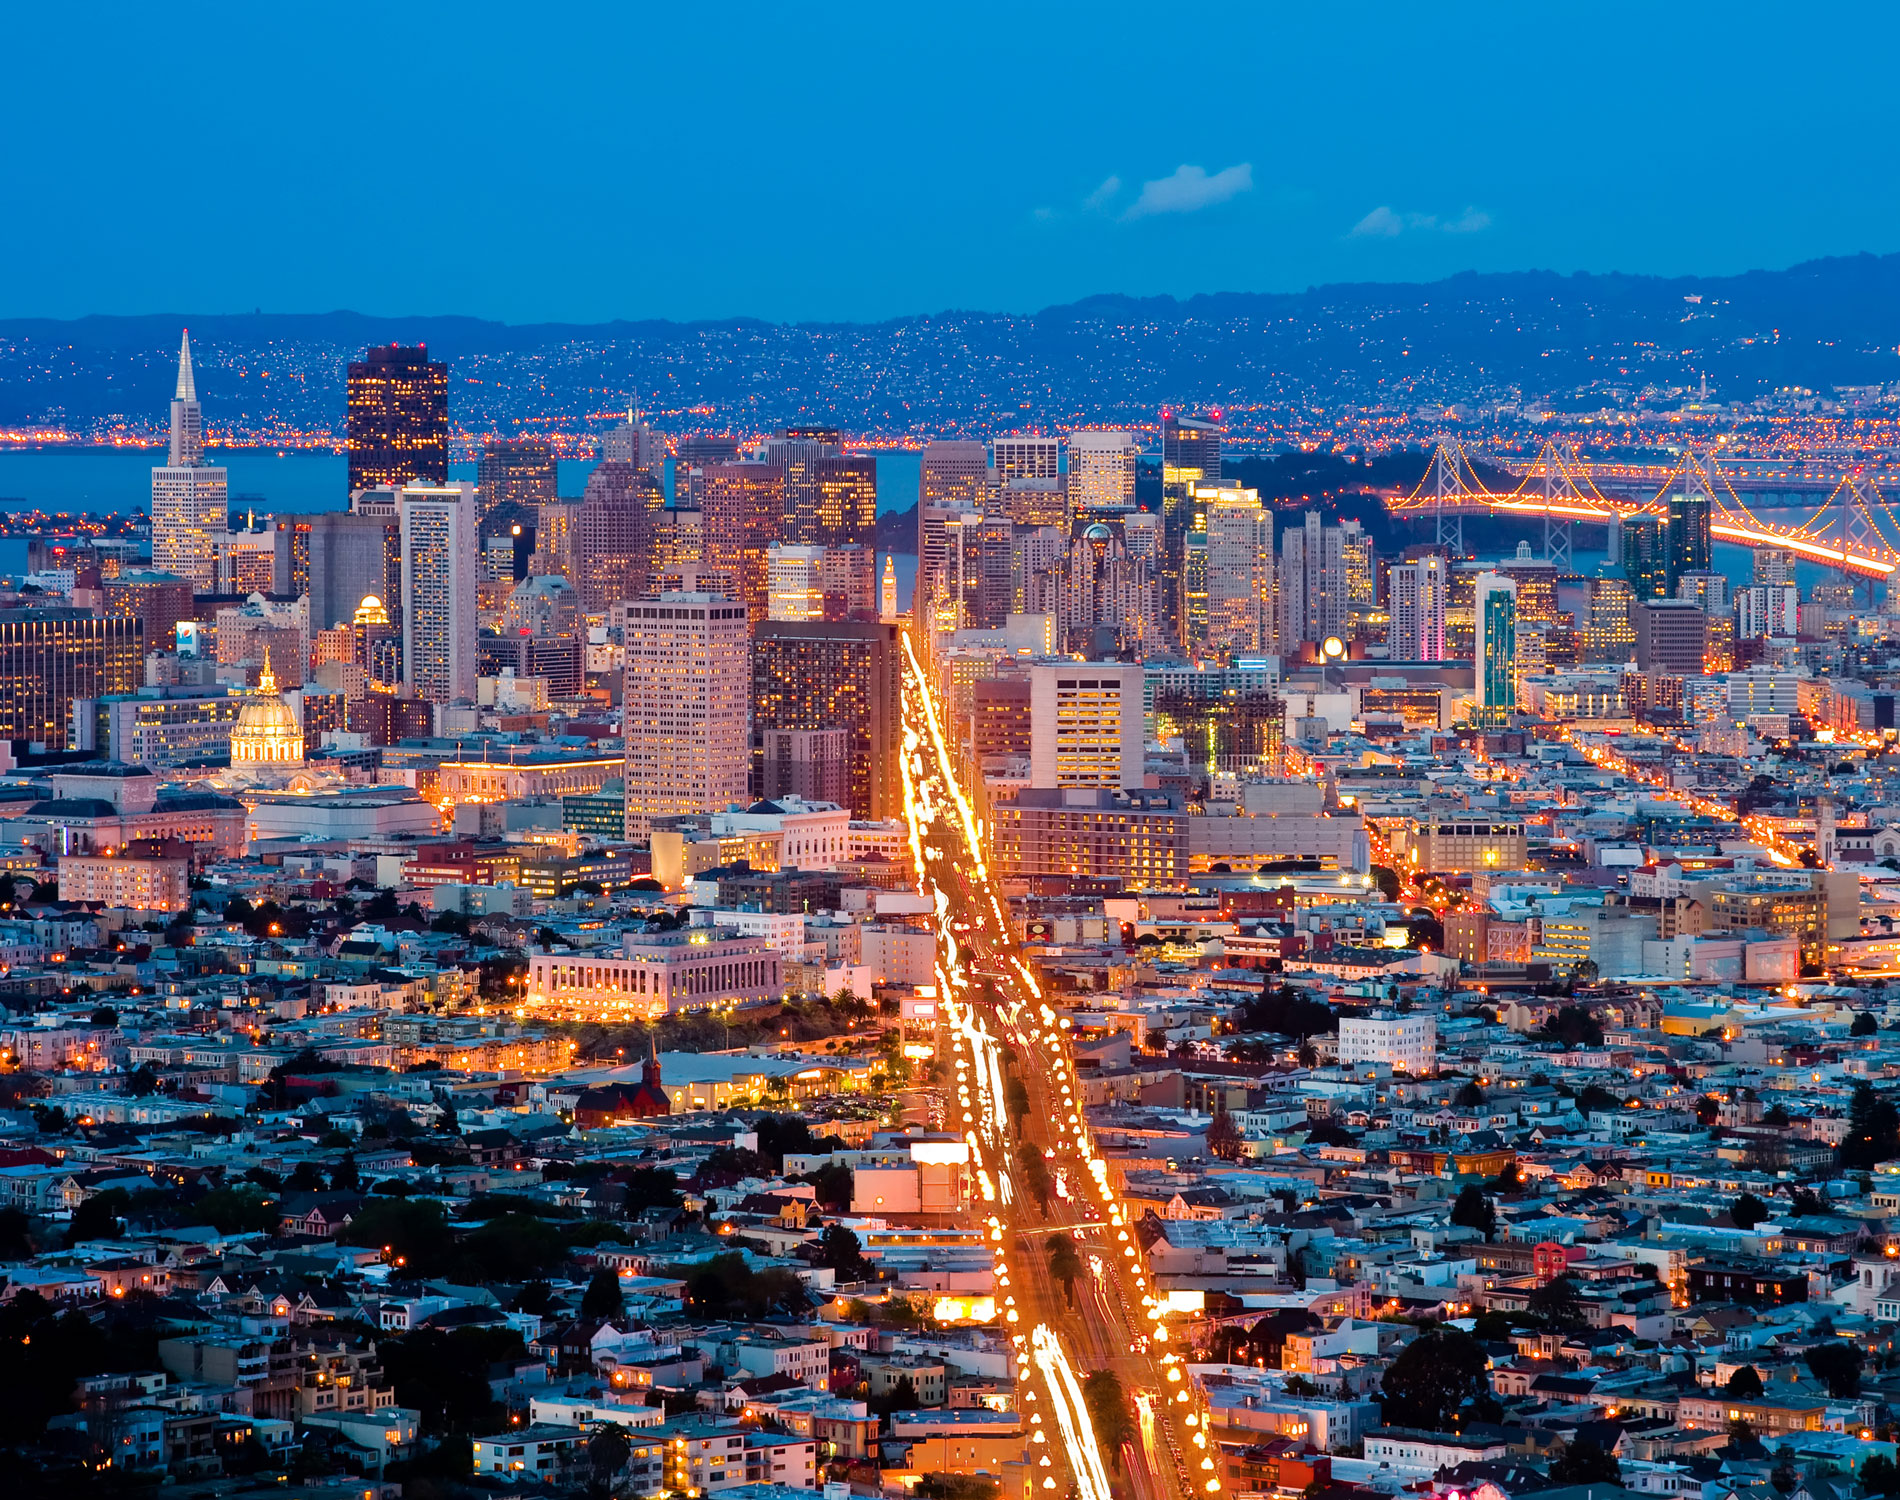 /-/media/images/website/background-images/offices/san-francisco/sanfransisco_dreamstime_1.ashx